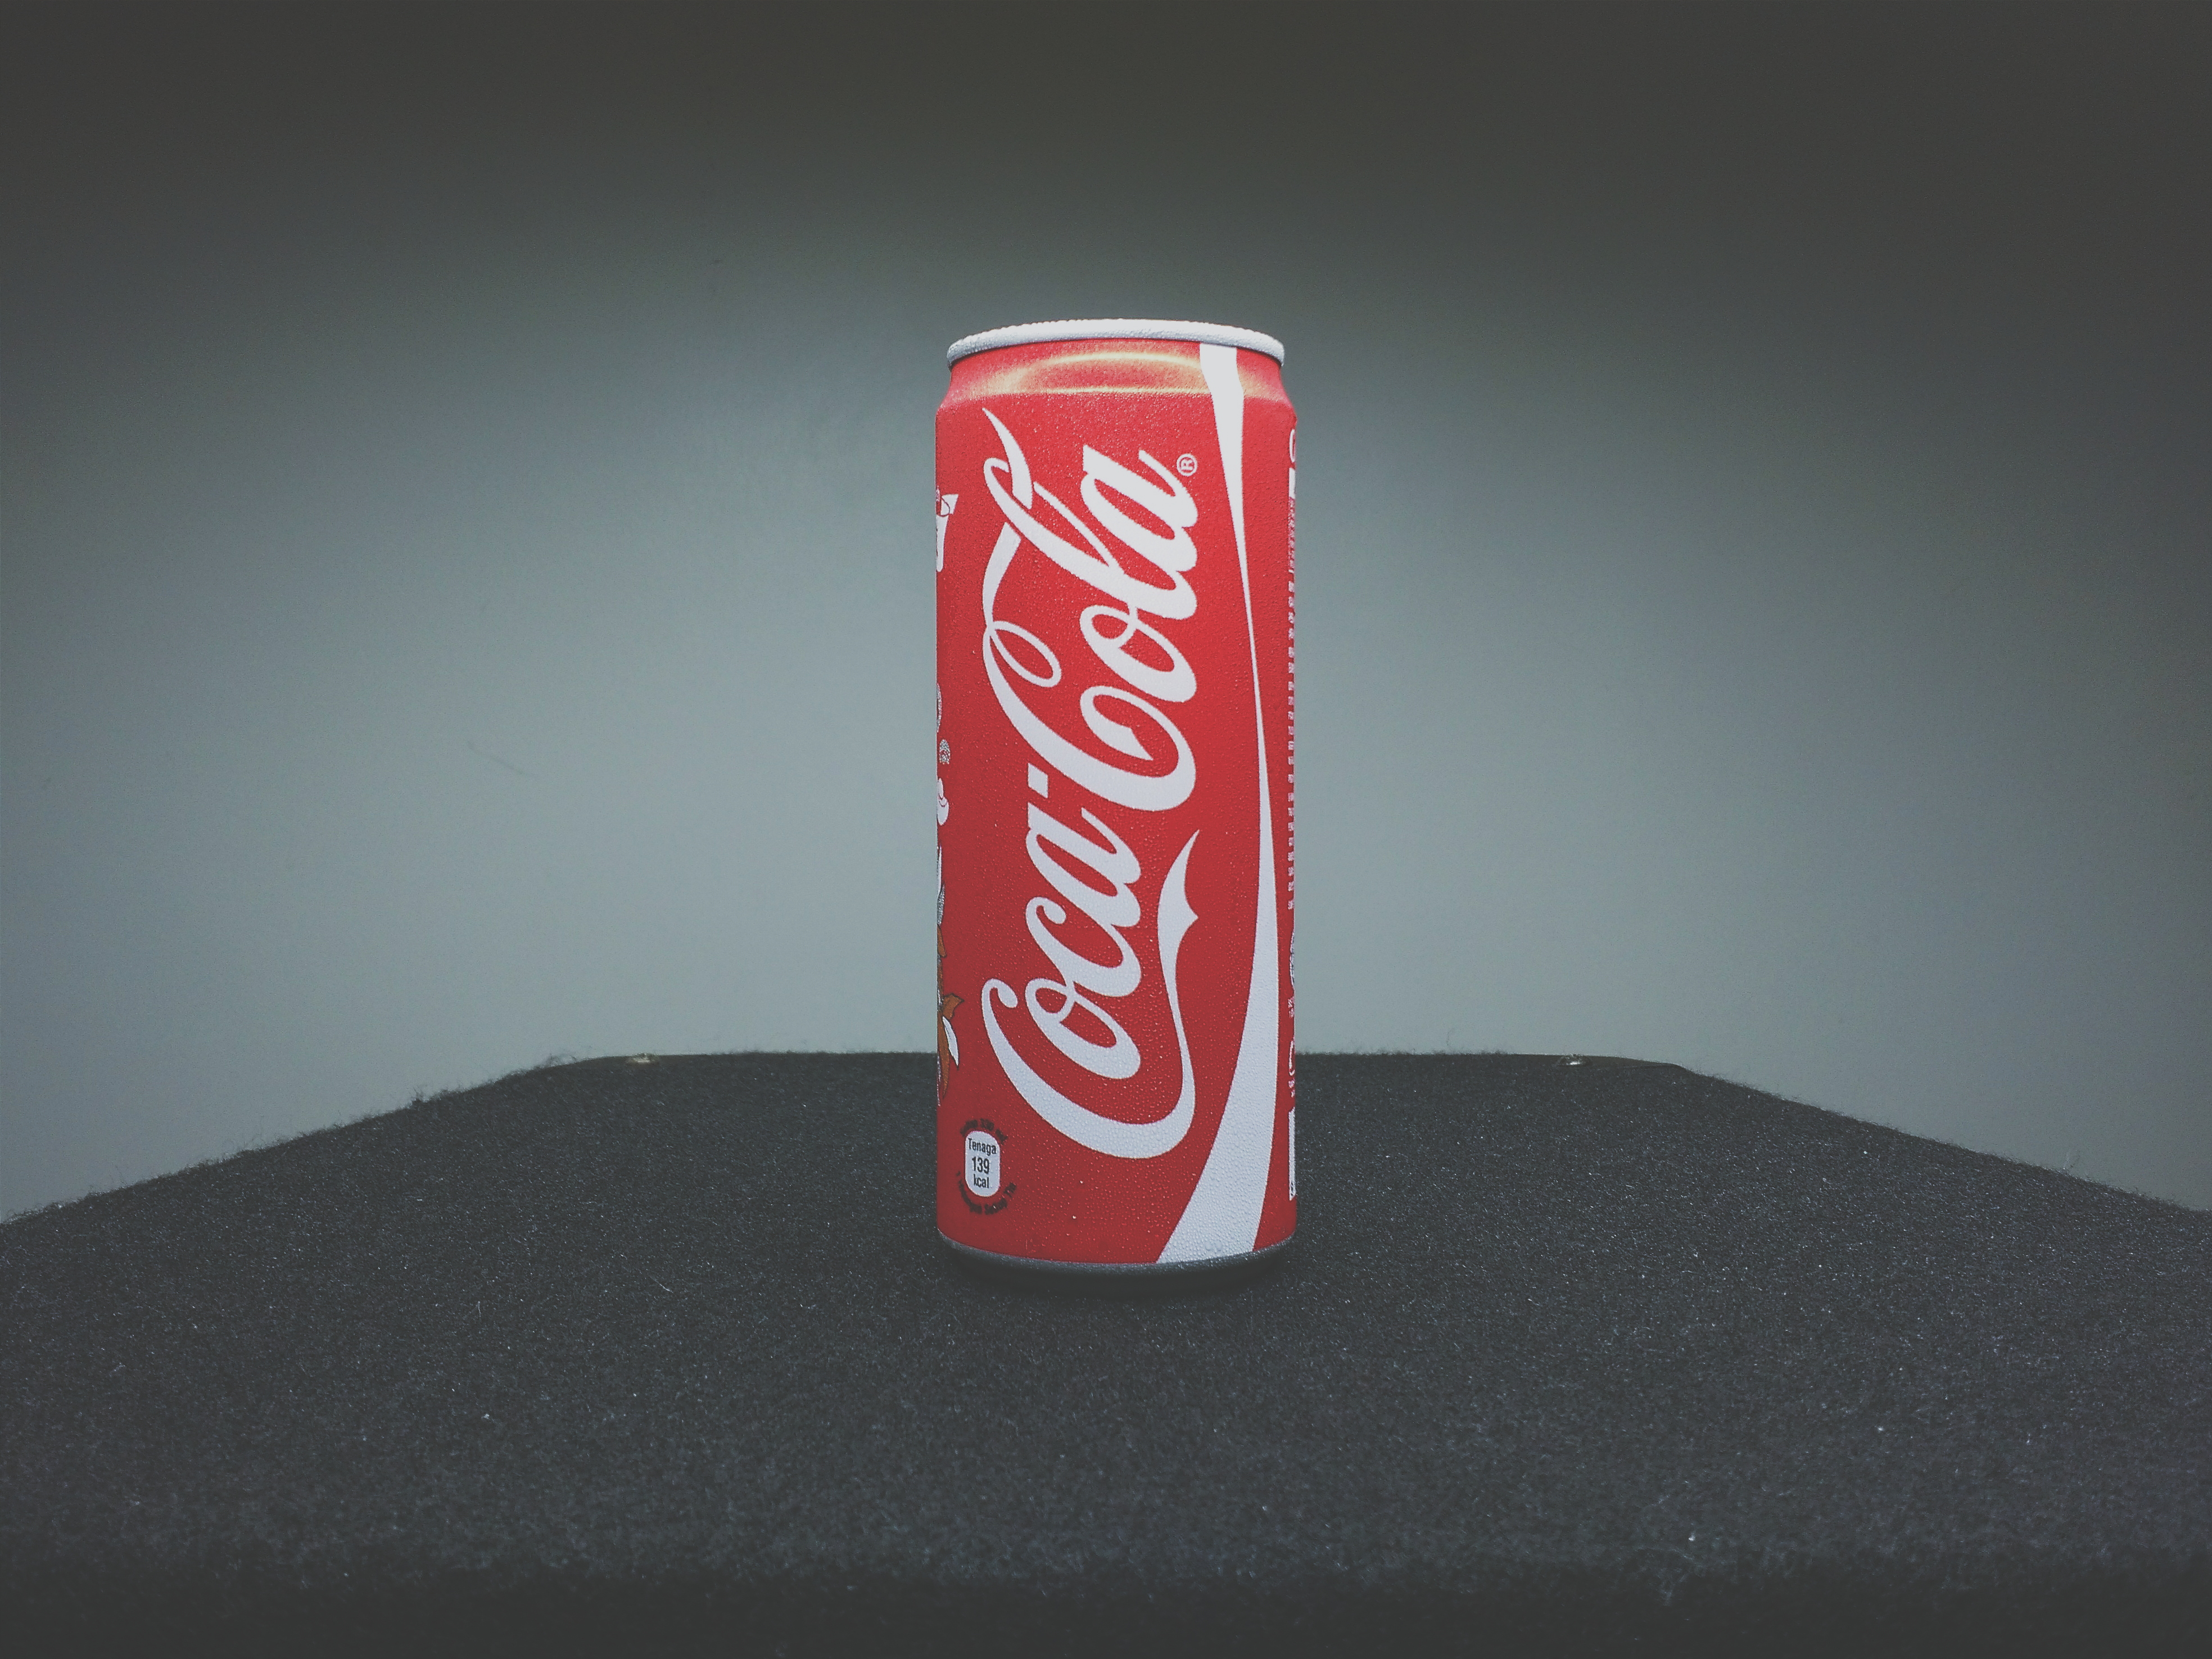 Black Wallpaper Iphone 6 Drug Store Drink Coca Cola Signage On Gray Wooden Wall